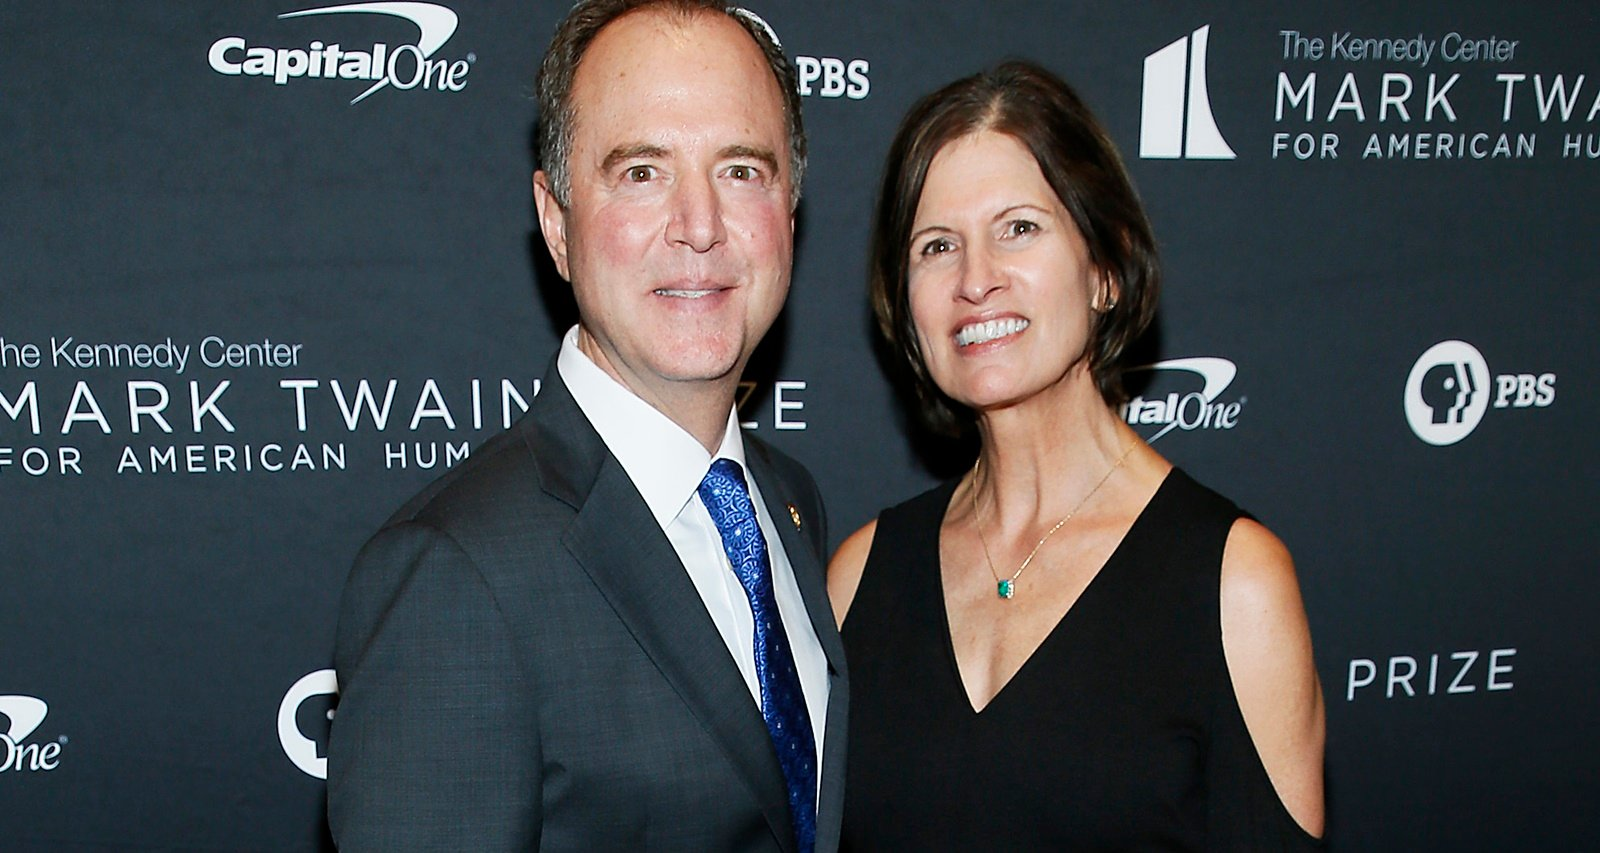 Adam Schiff's Wife: Eve Schiff Wiki, Kids, Education and Facts You Need To Know